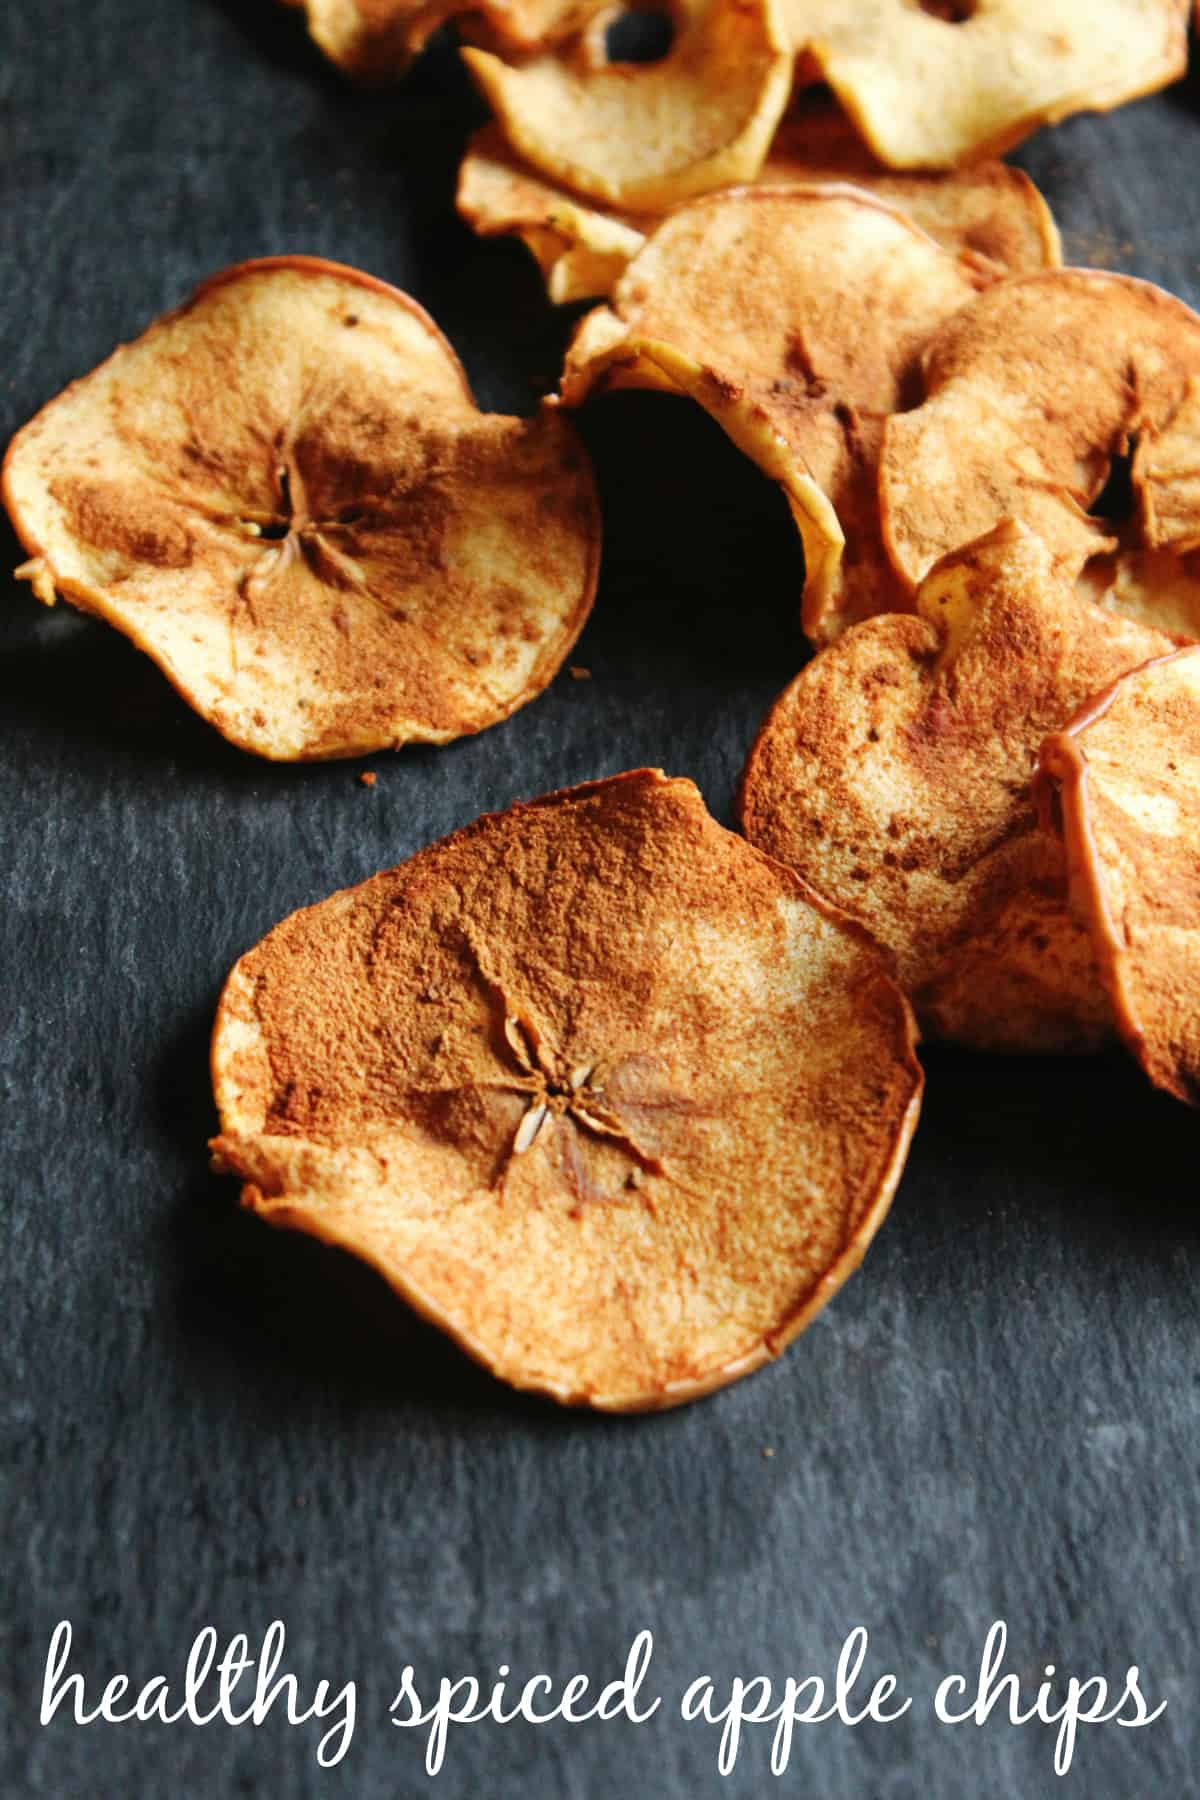 Healthy spiced apple chips! These easy homemade apple chips are the perfect snack for almost any diet! Vegan, gluten free, sugar free, paleo.